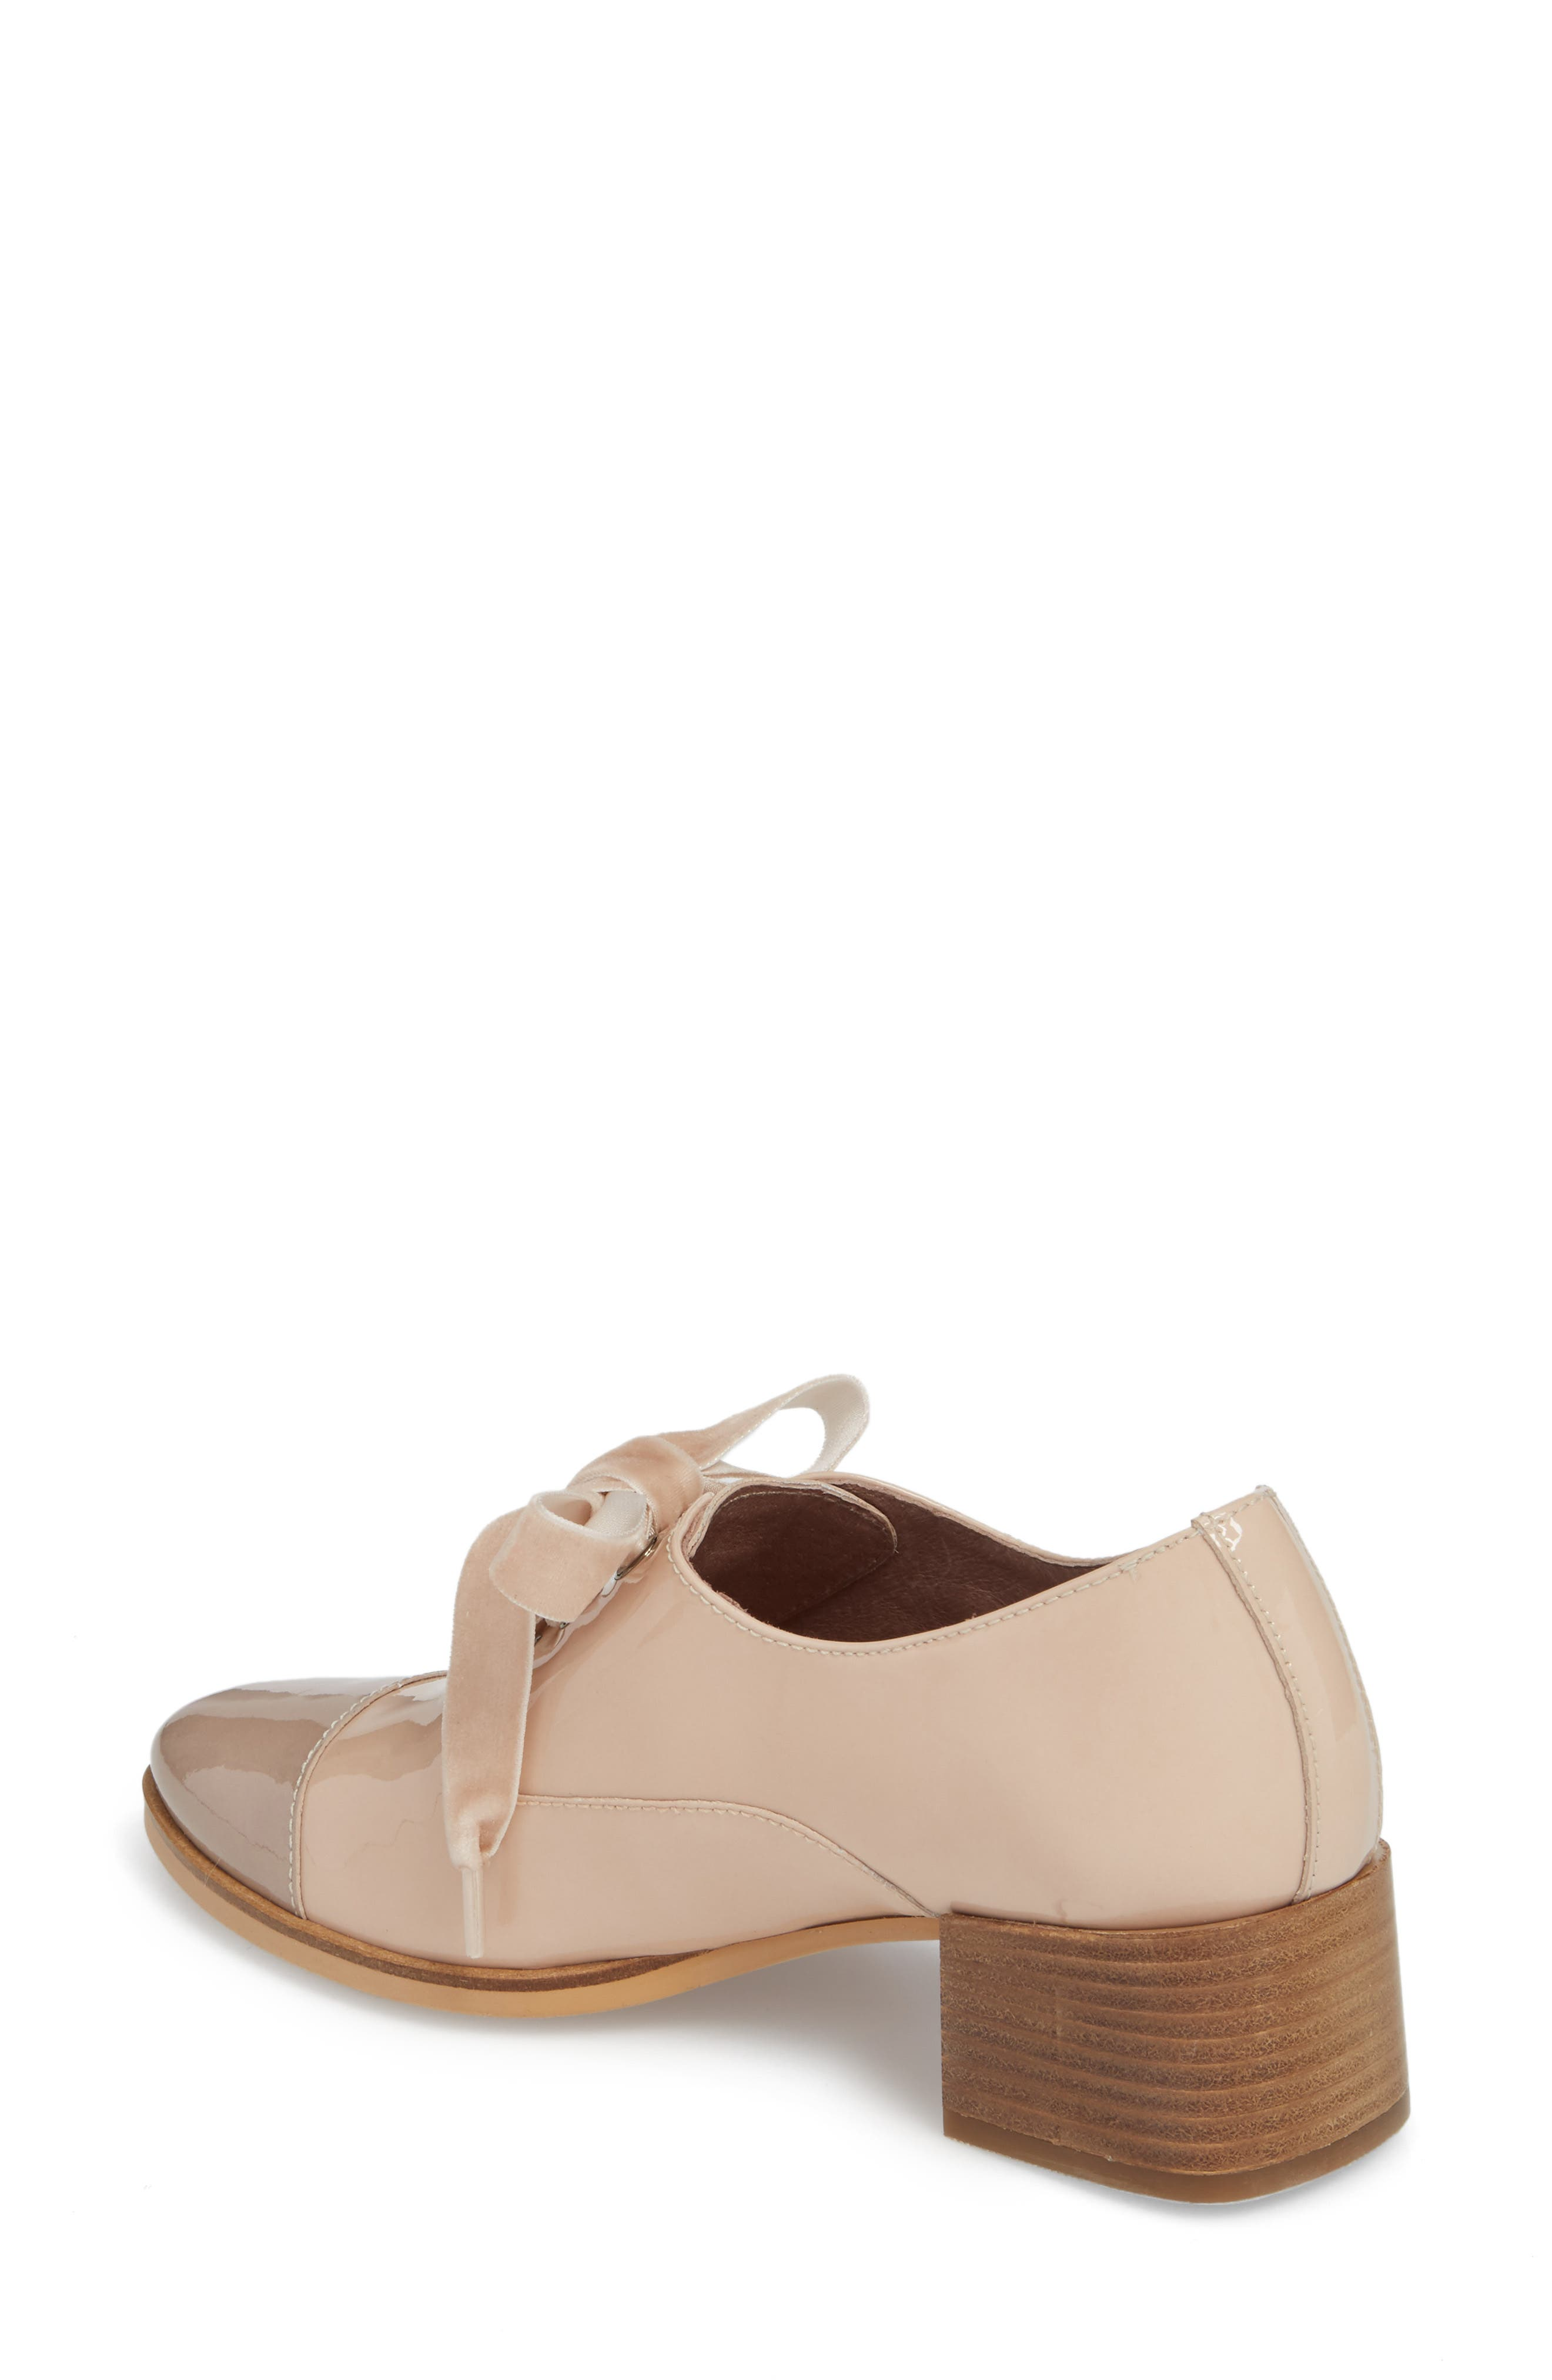 Lace-Up Oxford Pump,                             Alternate thumbnail 2, color,                             TAUPE/ PALO PATENT LEATHER